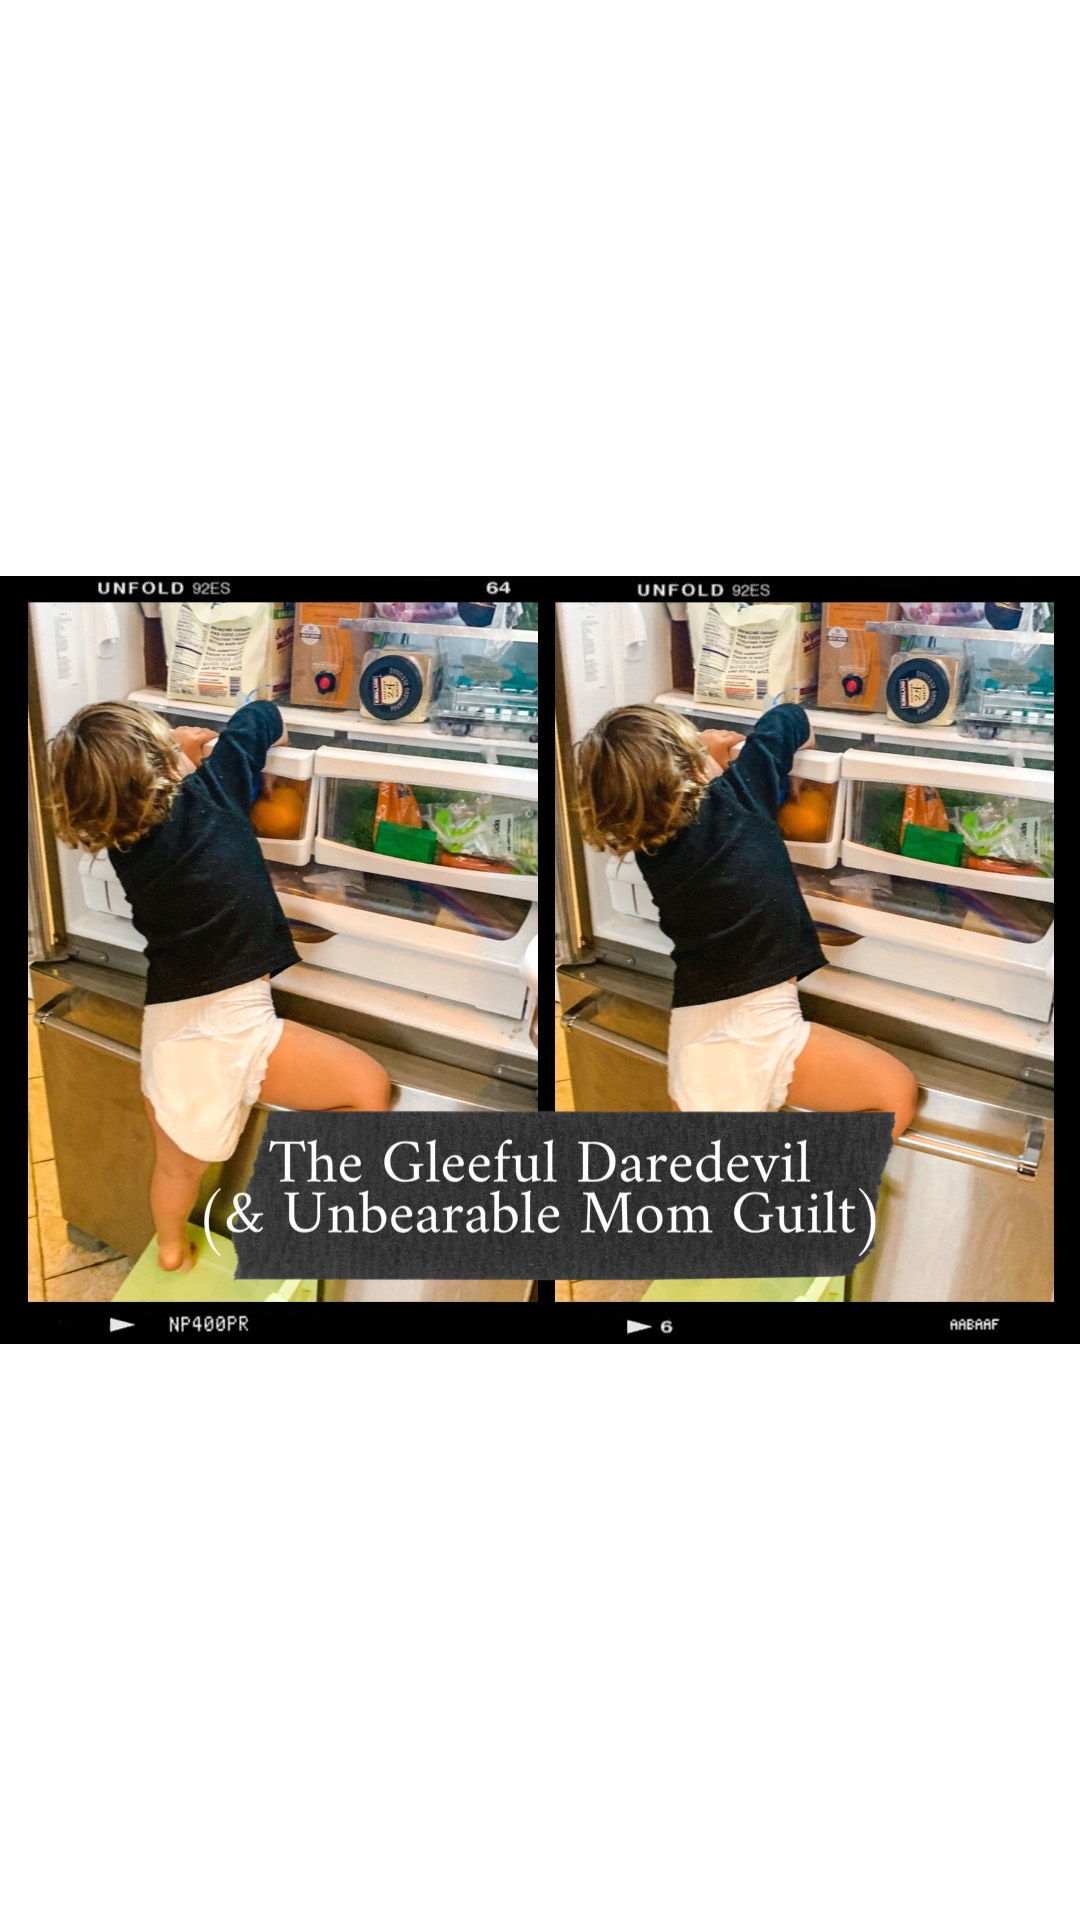 The Gleeful Daredevil and Unbearable Mom Guilt: Raising a Super Active and Intense Toddler